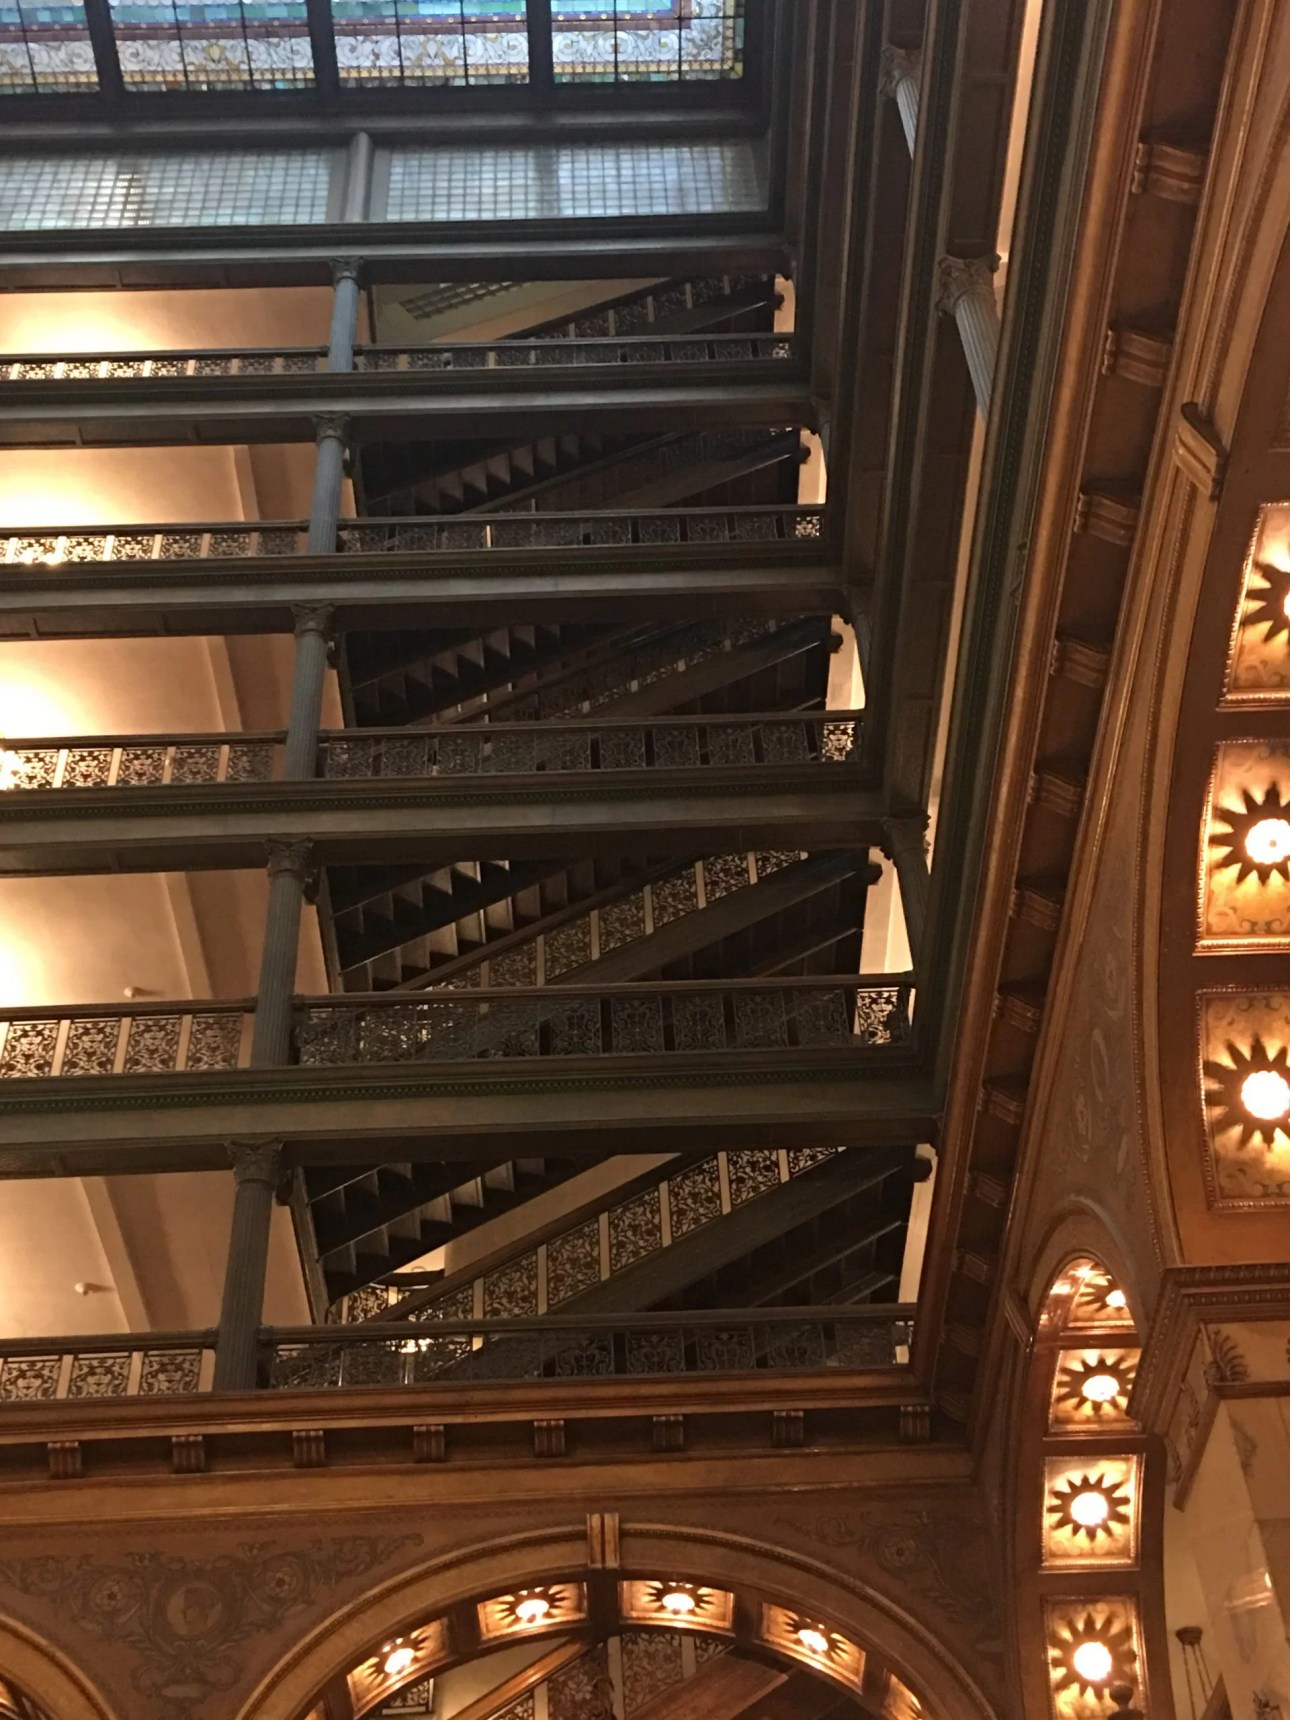 Interior upward view of the Brown Palace atrium